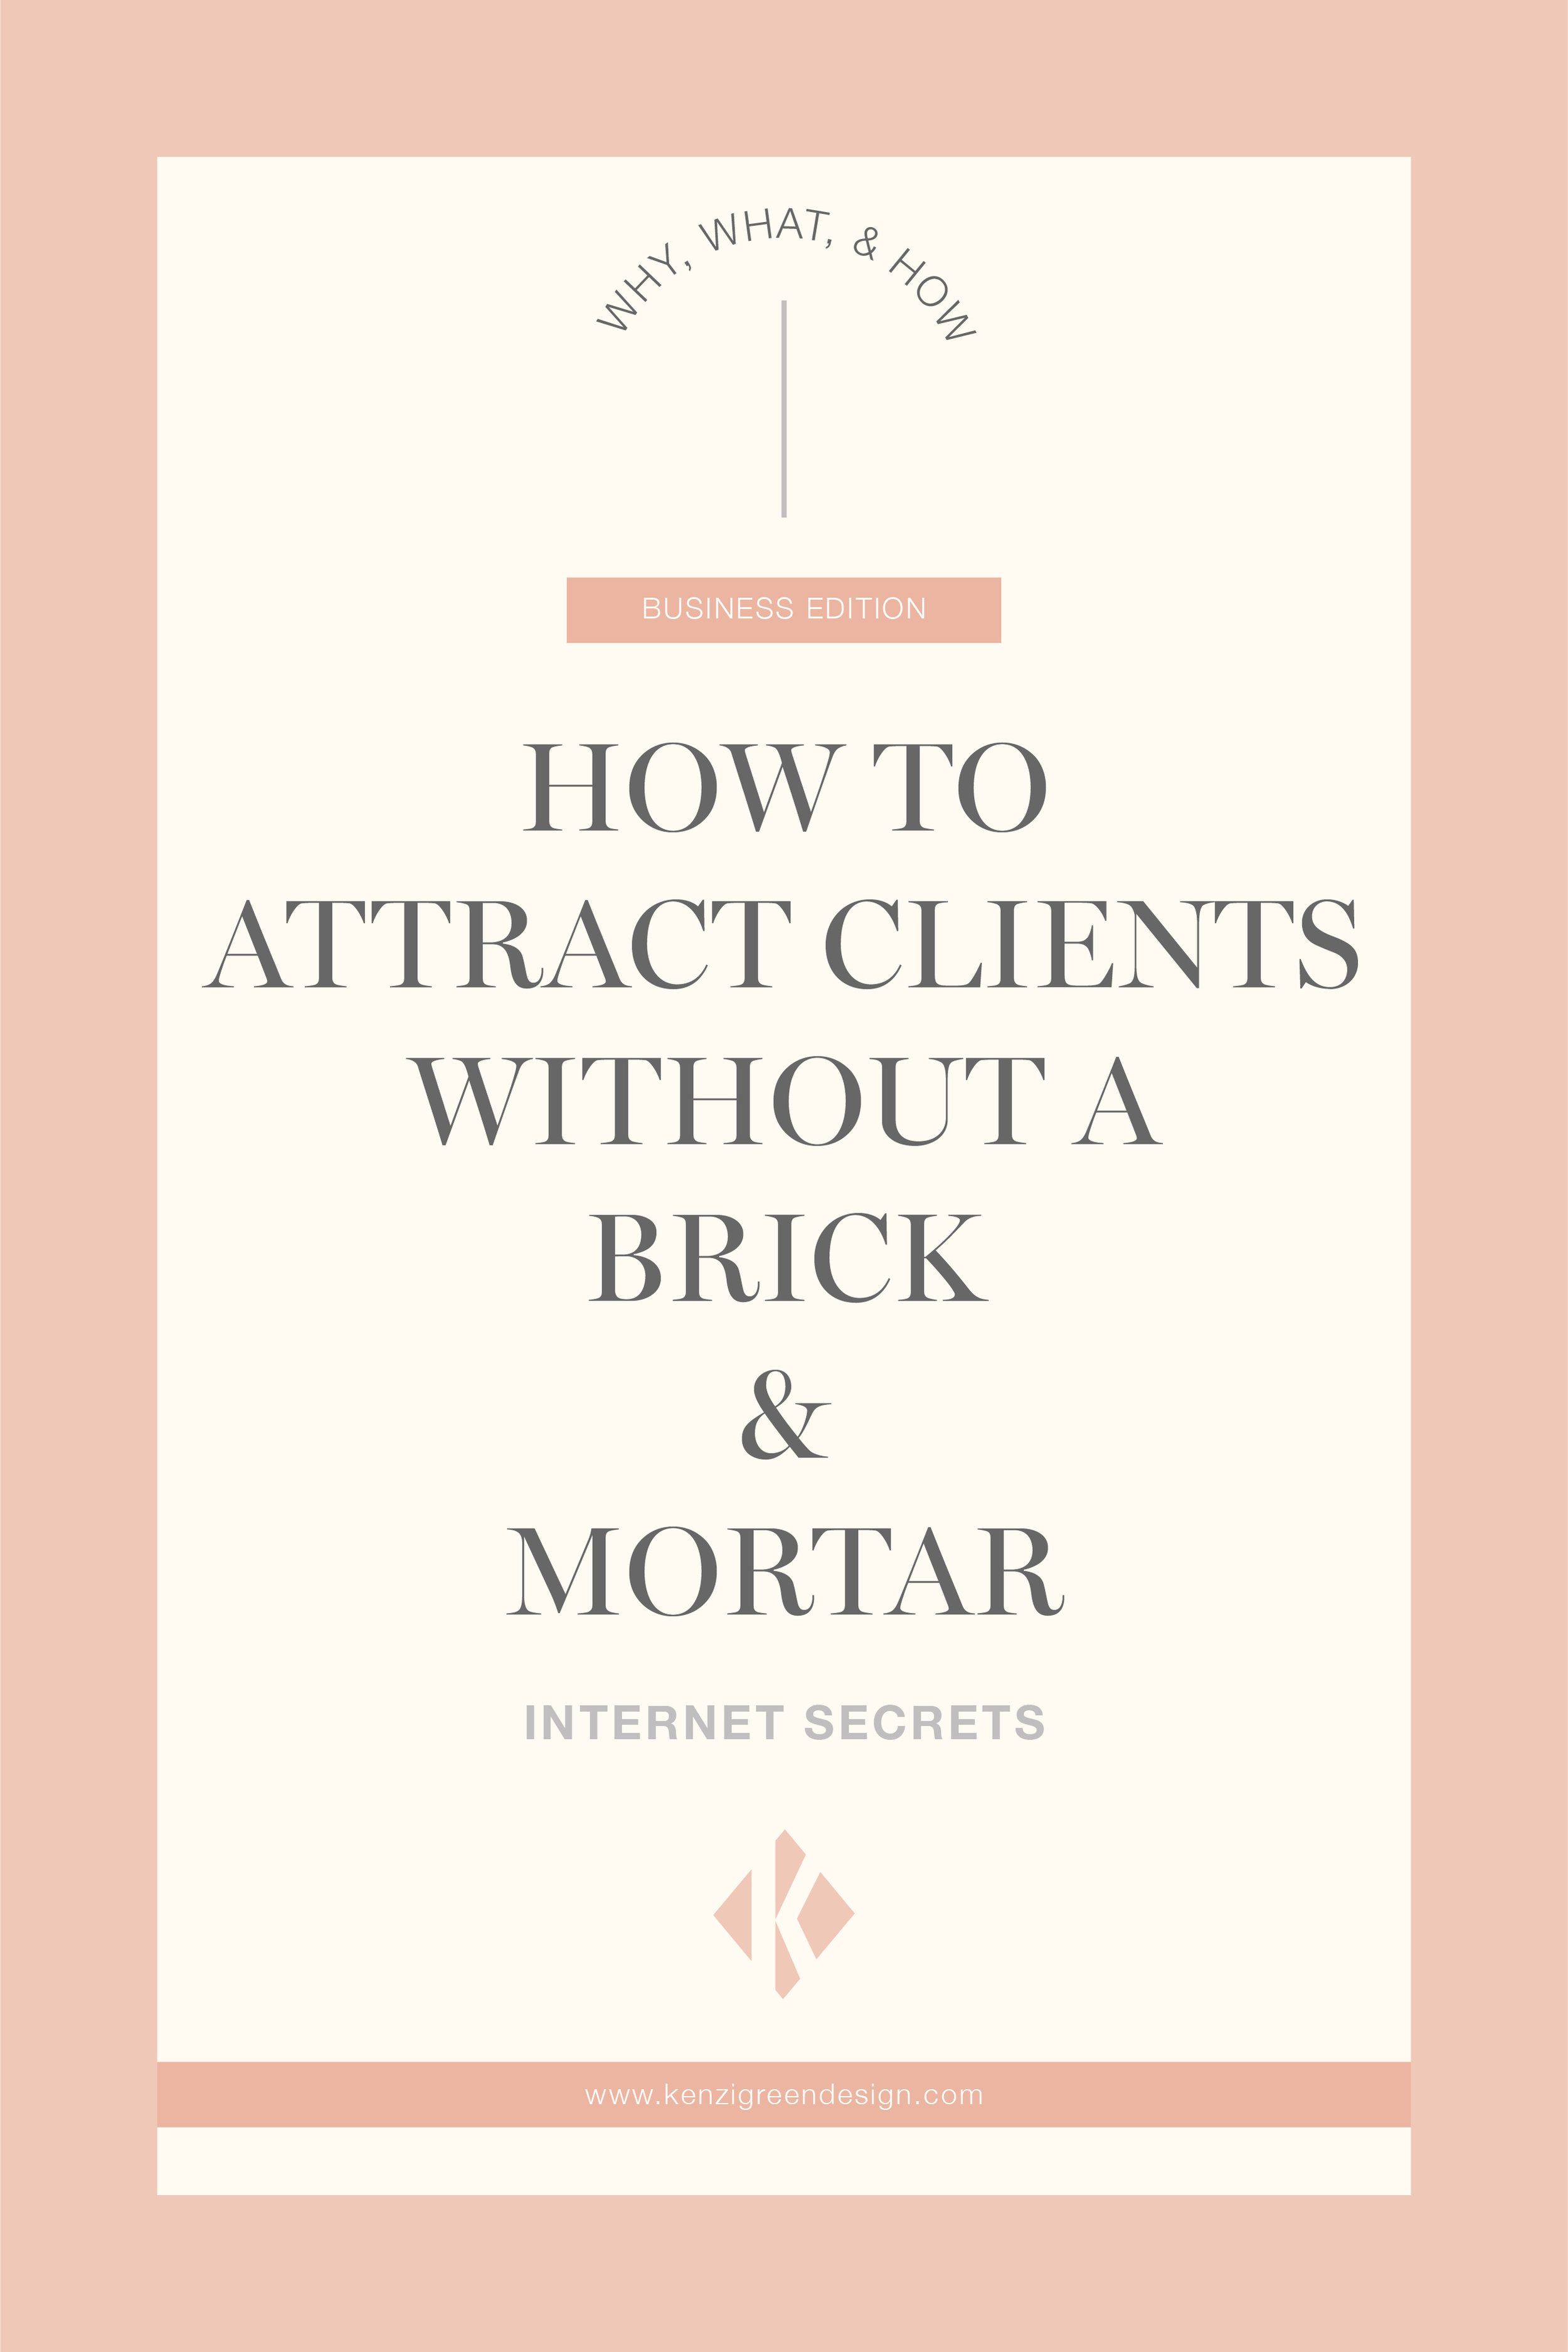 How to Attract Clients without a Brick & Mortar #businesstips #biztips #remotejobs #howtogetclients